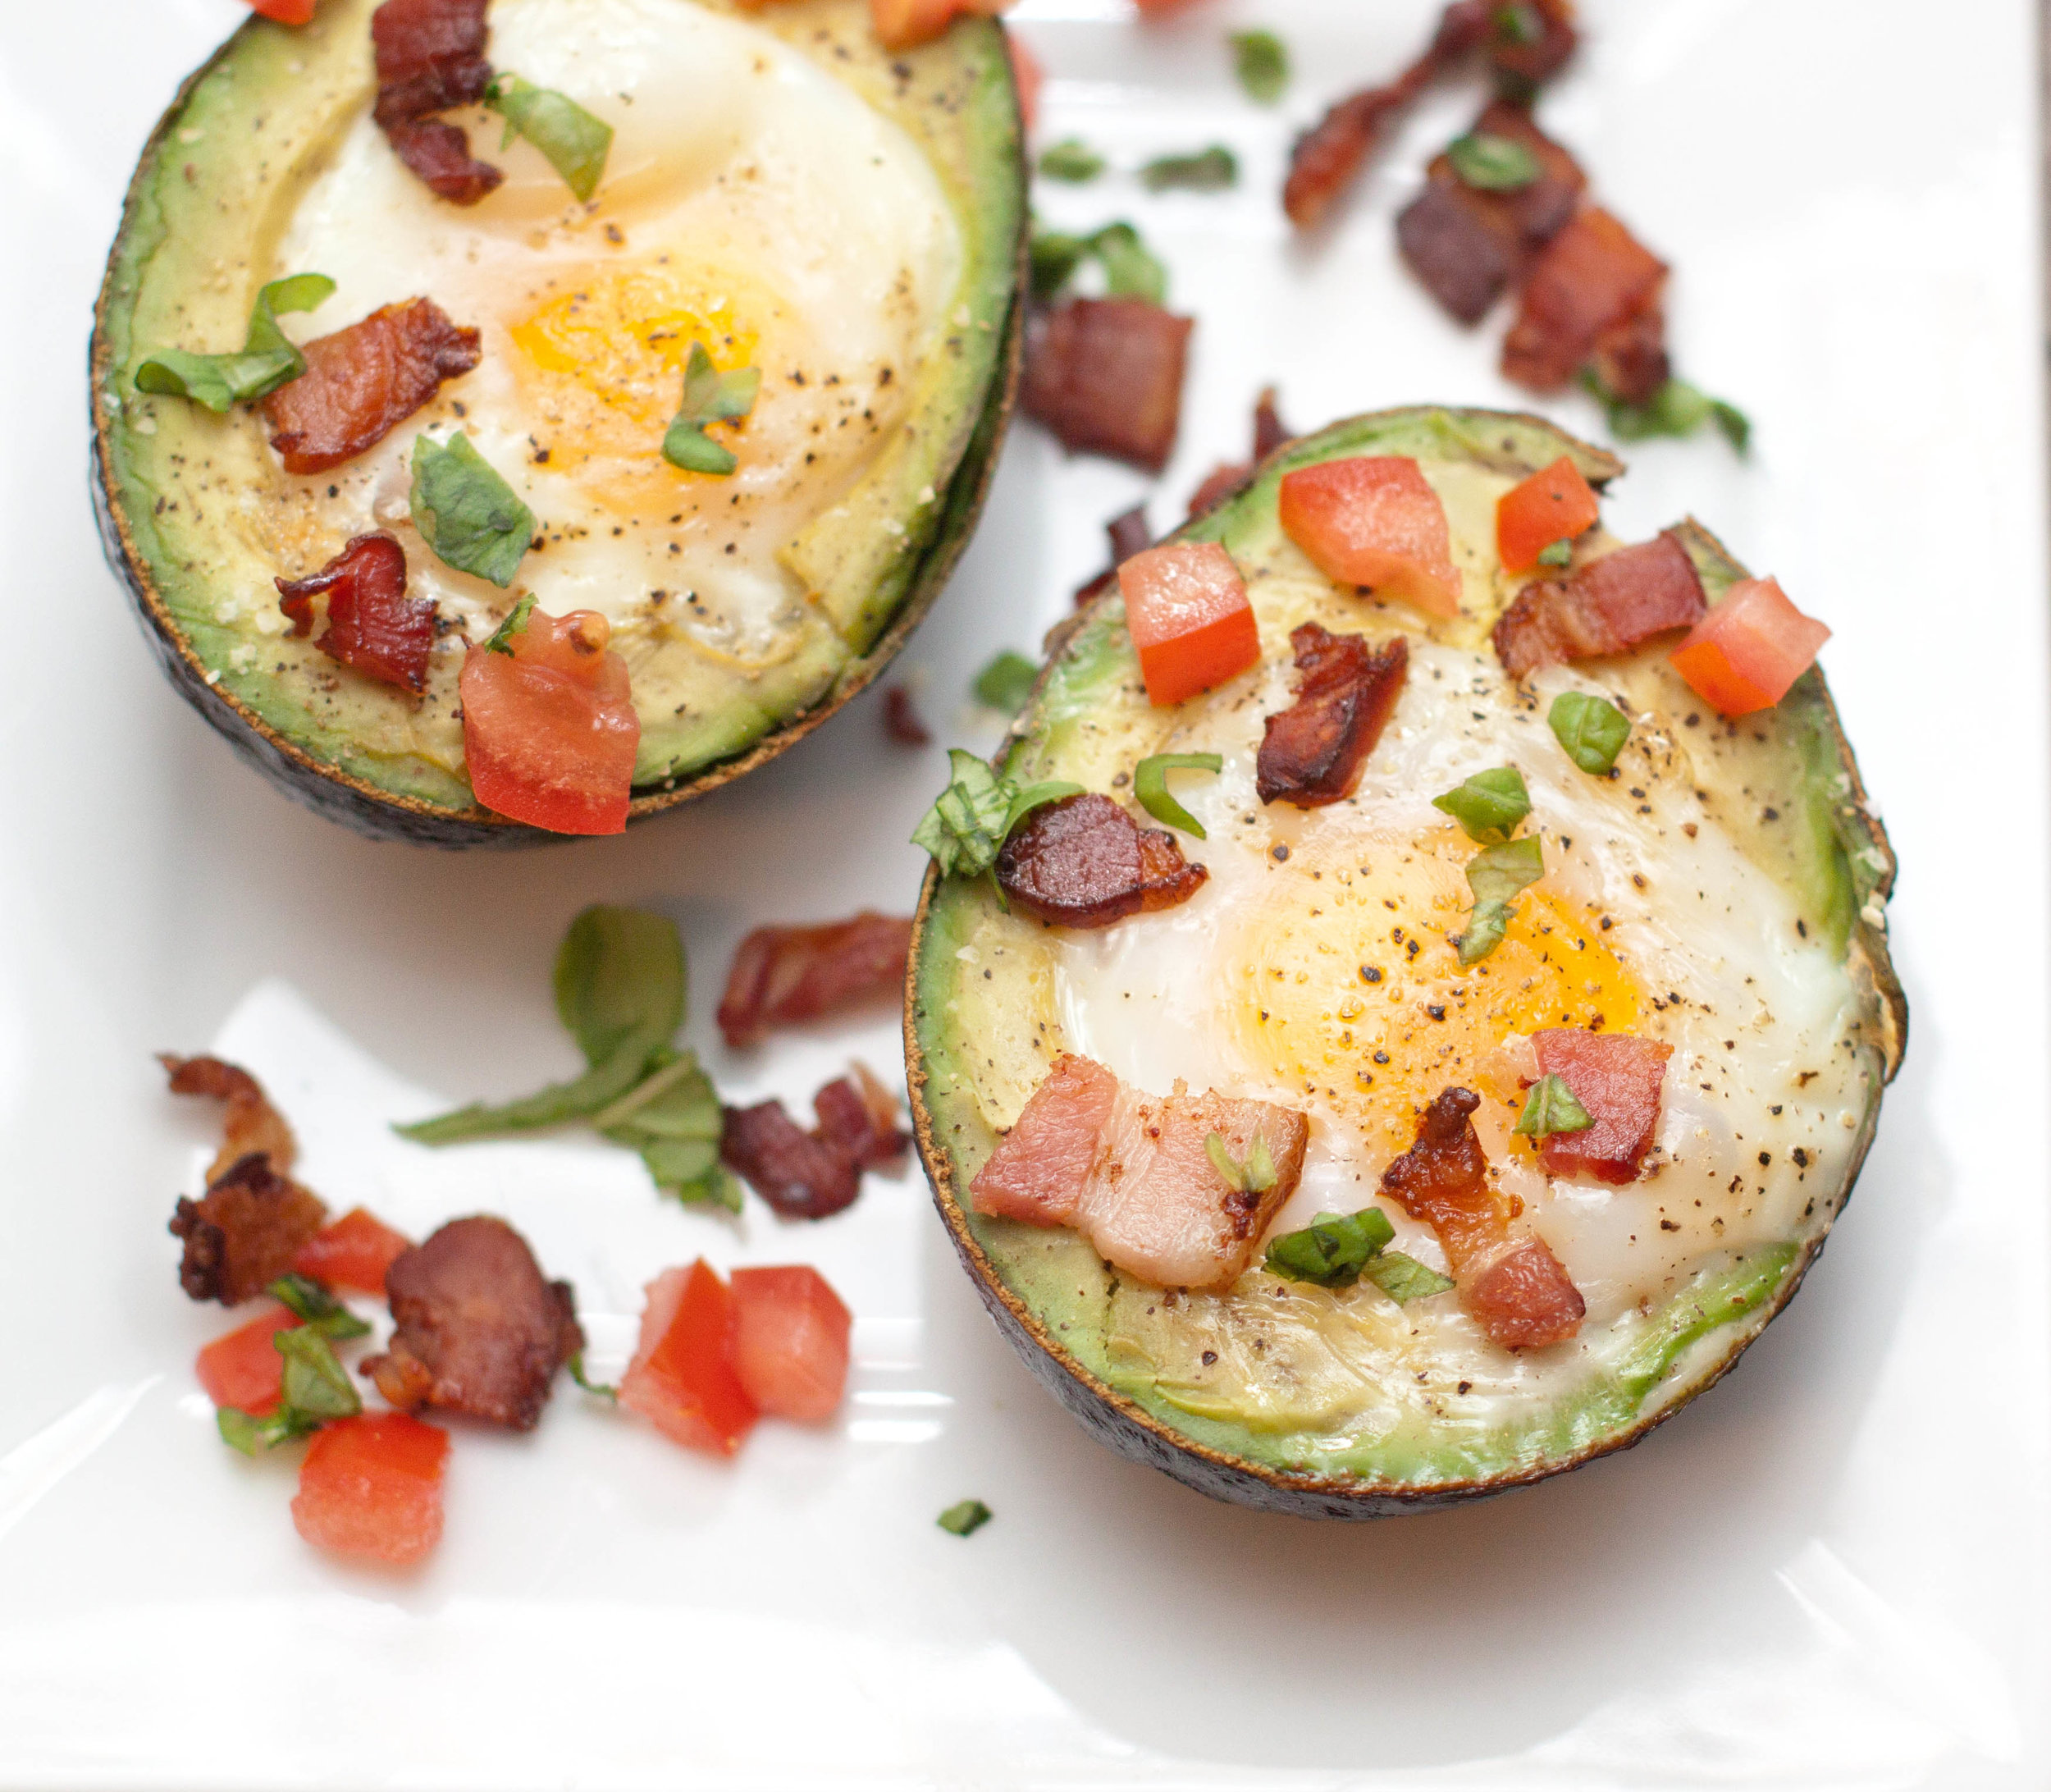 Avocado Baked Eggs - Prep: 10 MINTotal: 40 MINServings: 2